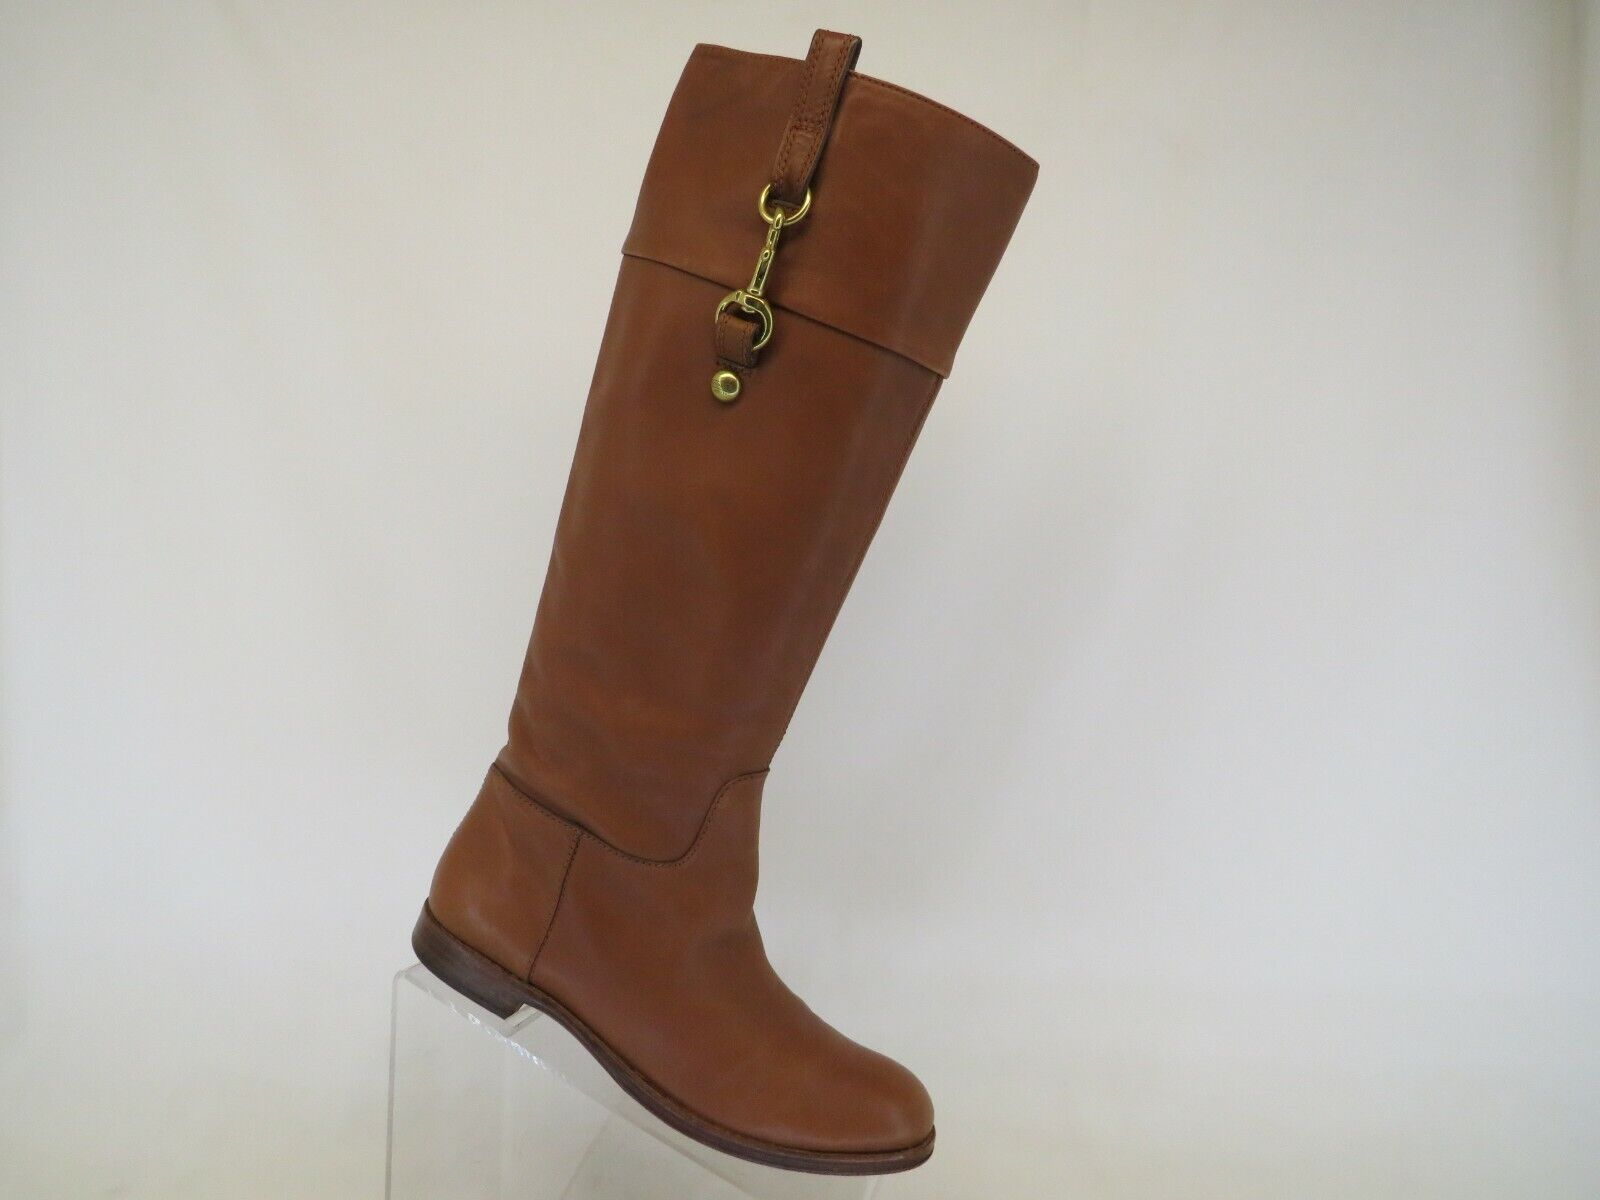 Coach Brown Leather Side Zip High Knee Fashion Boots Size 7.5 B